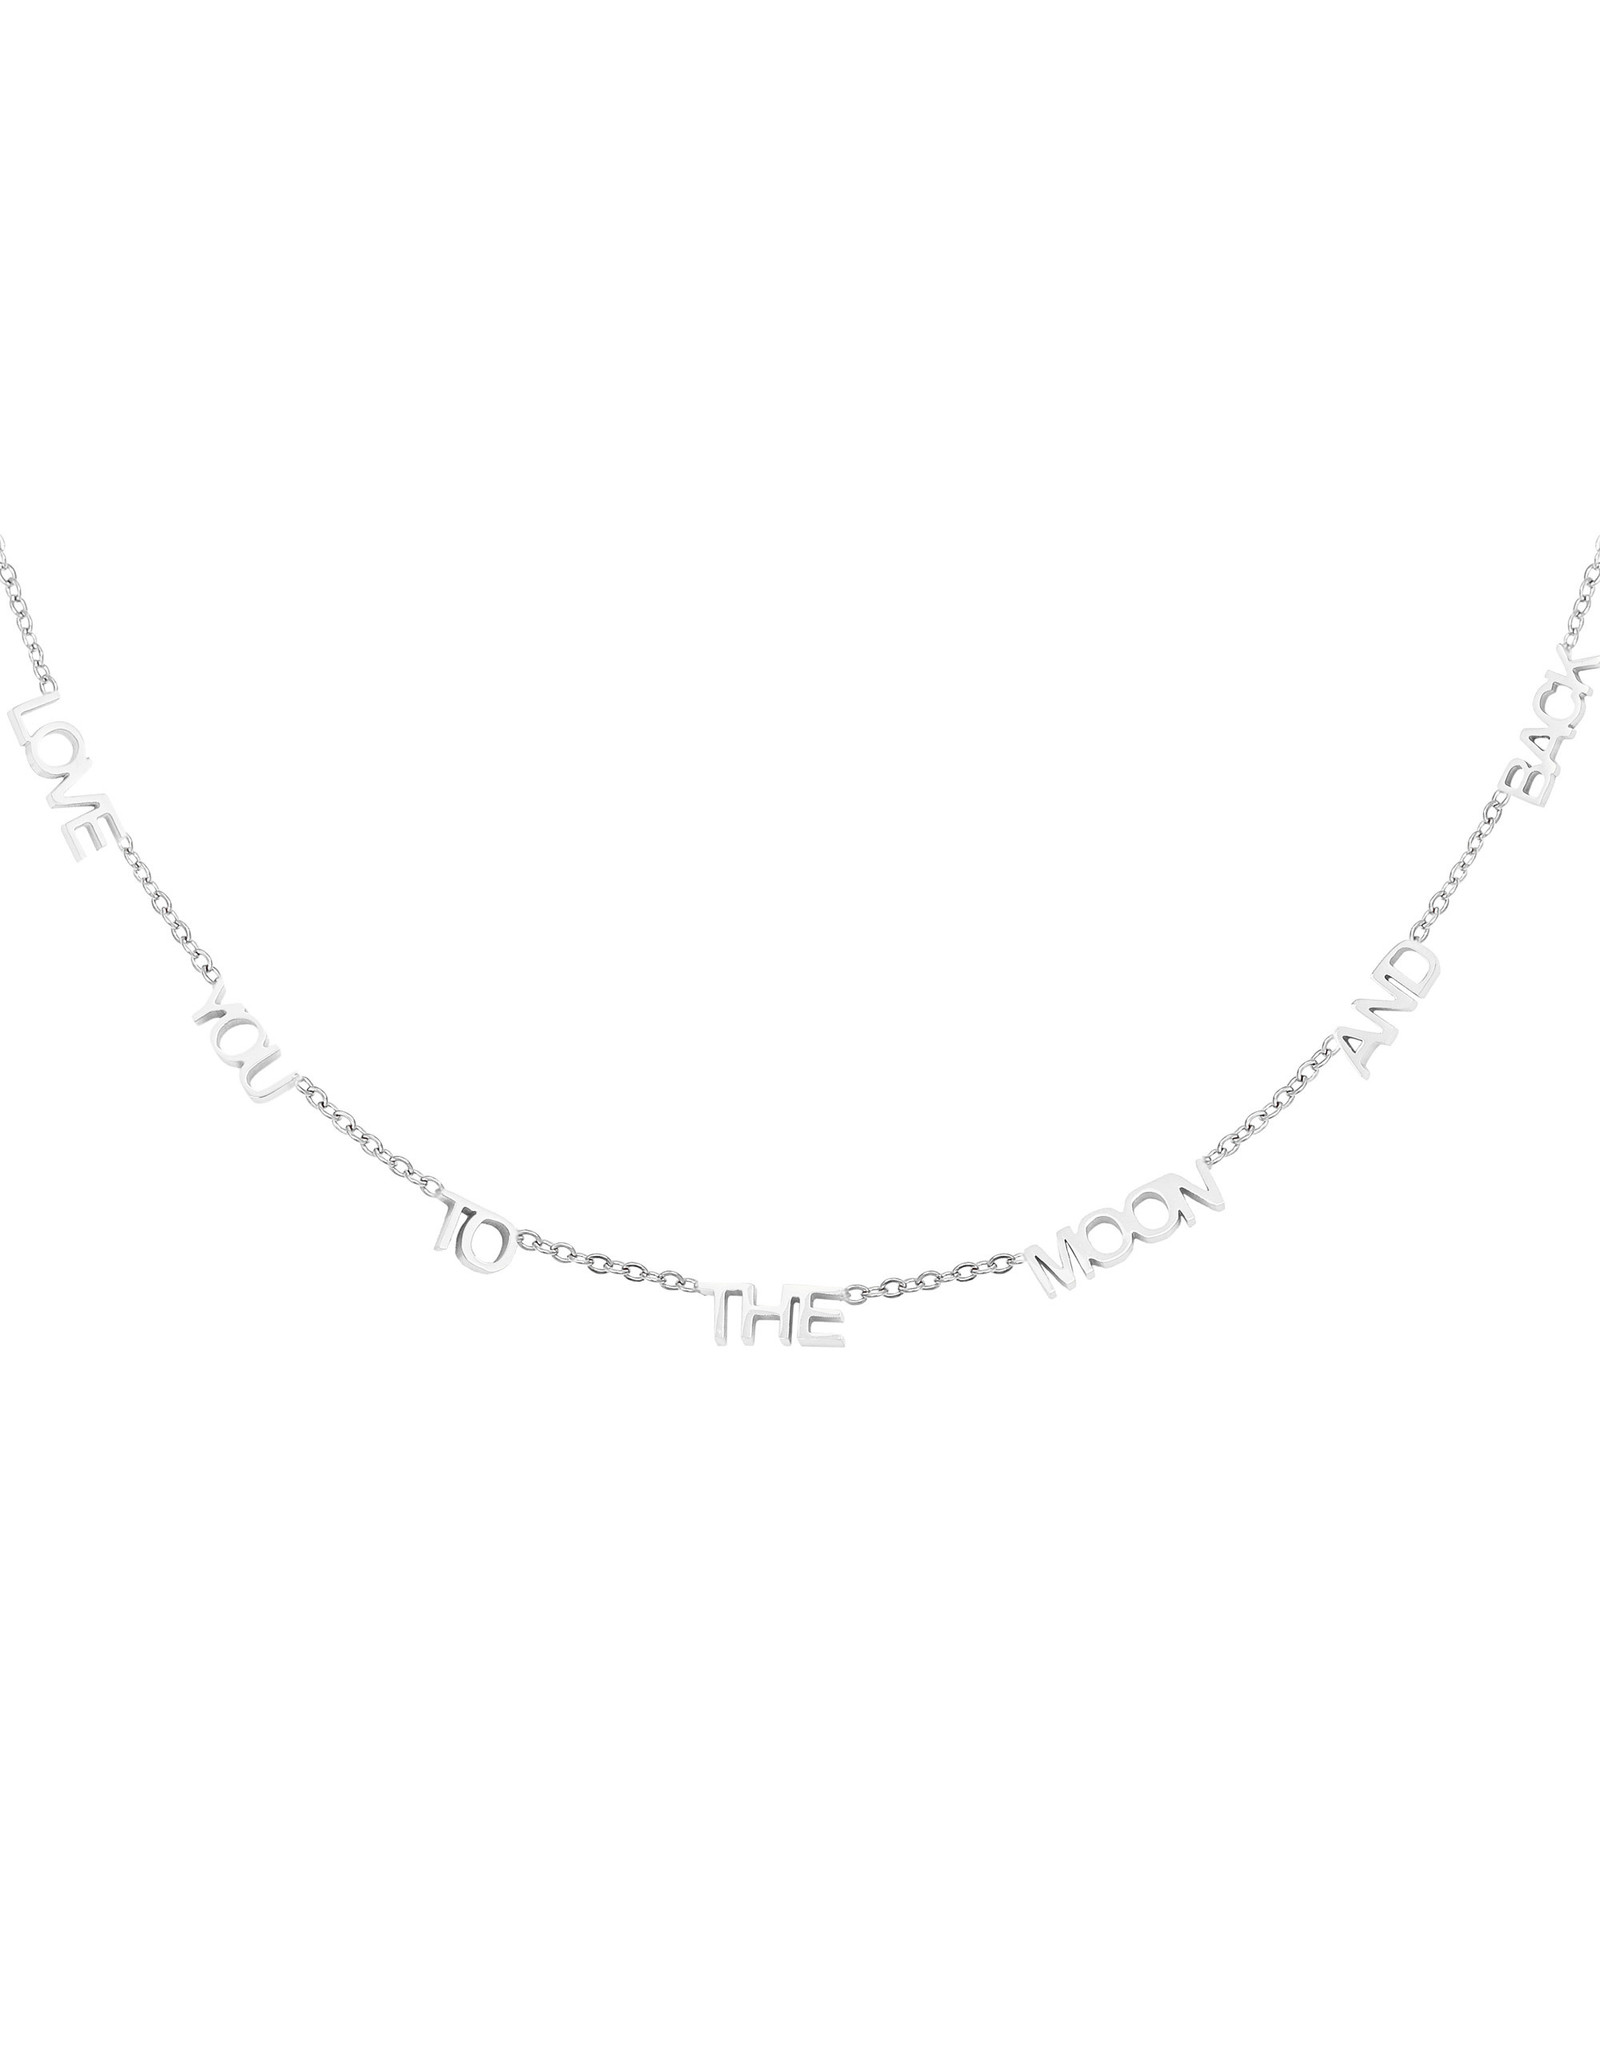 Ketting RVS Love you to the moon and back zilverkleurig